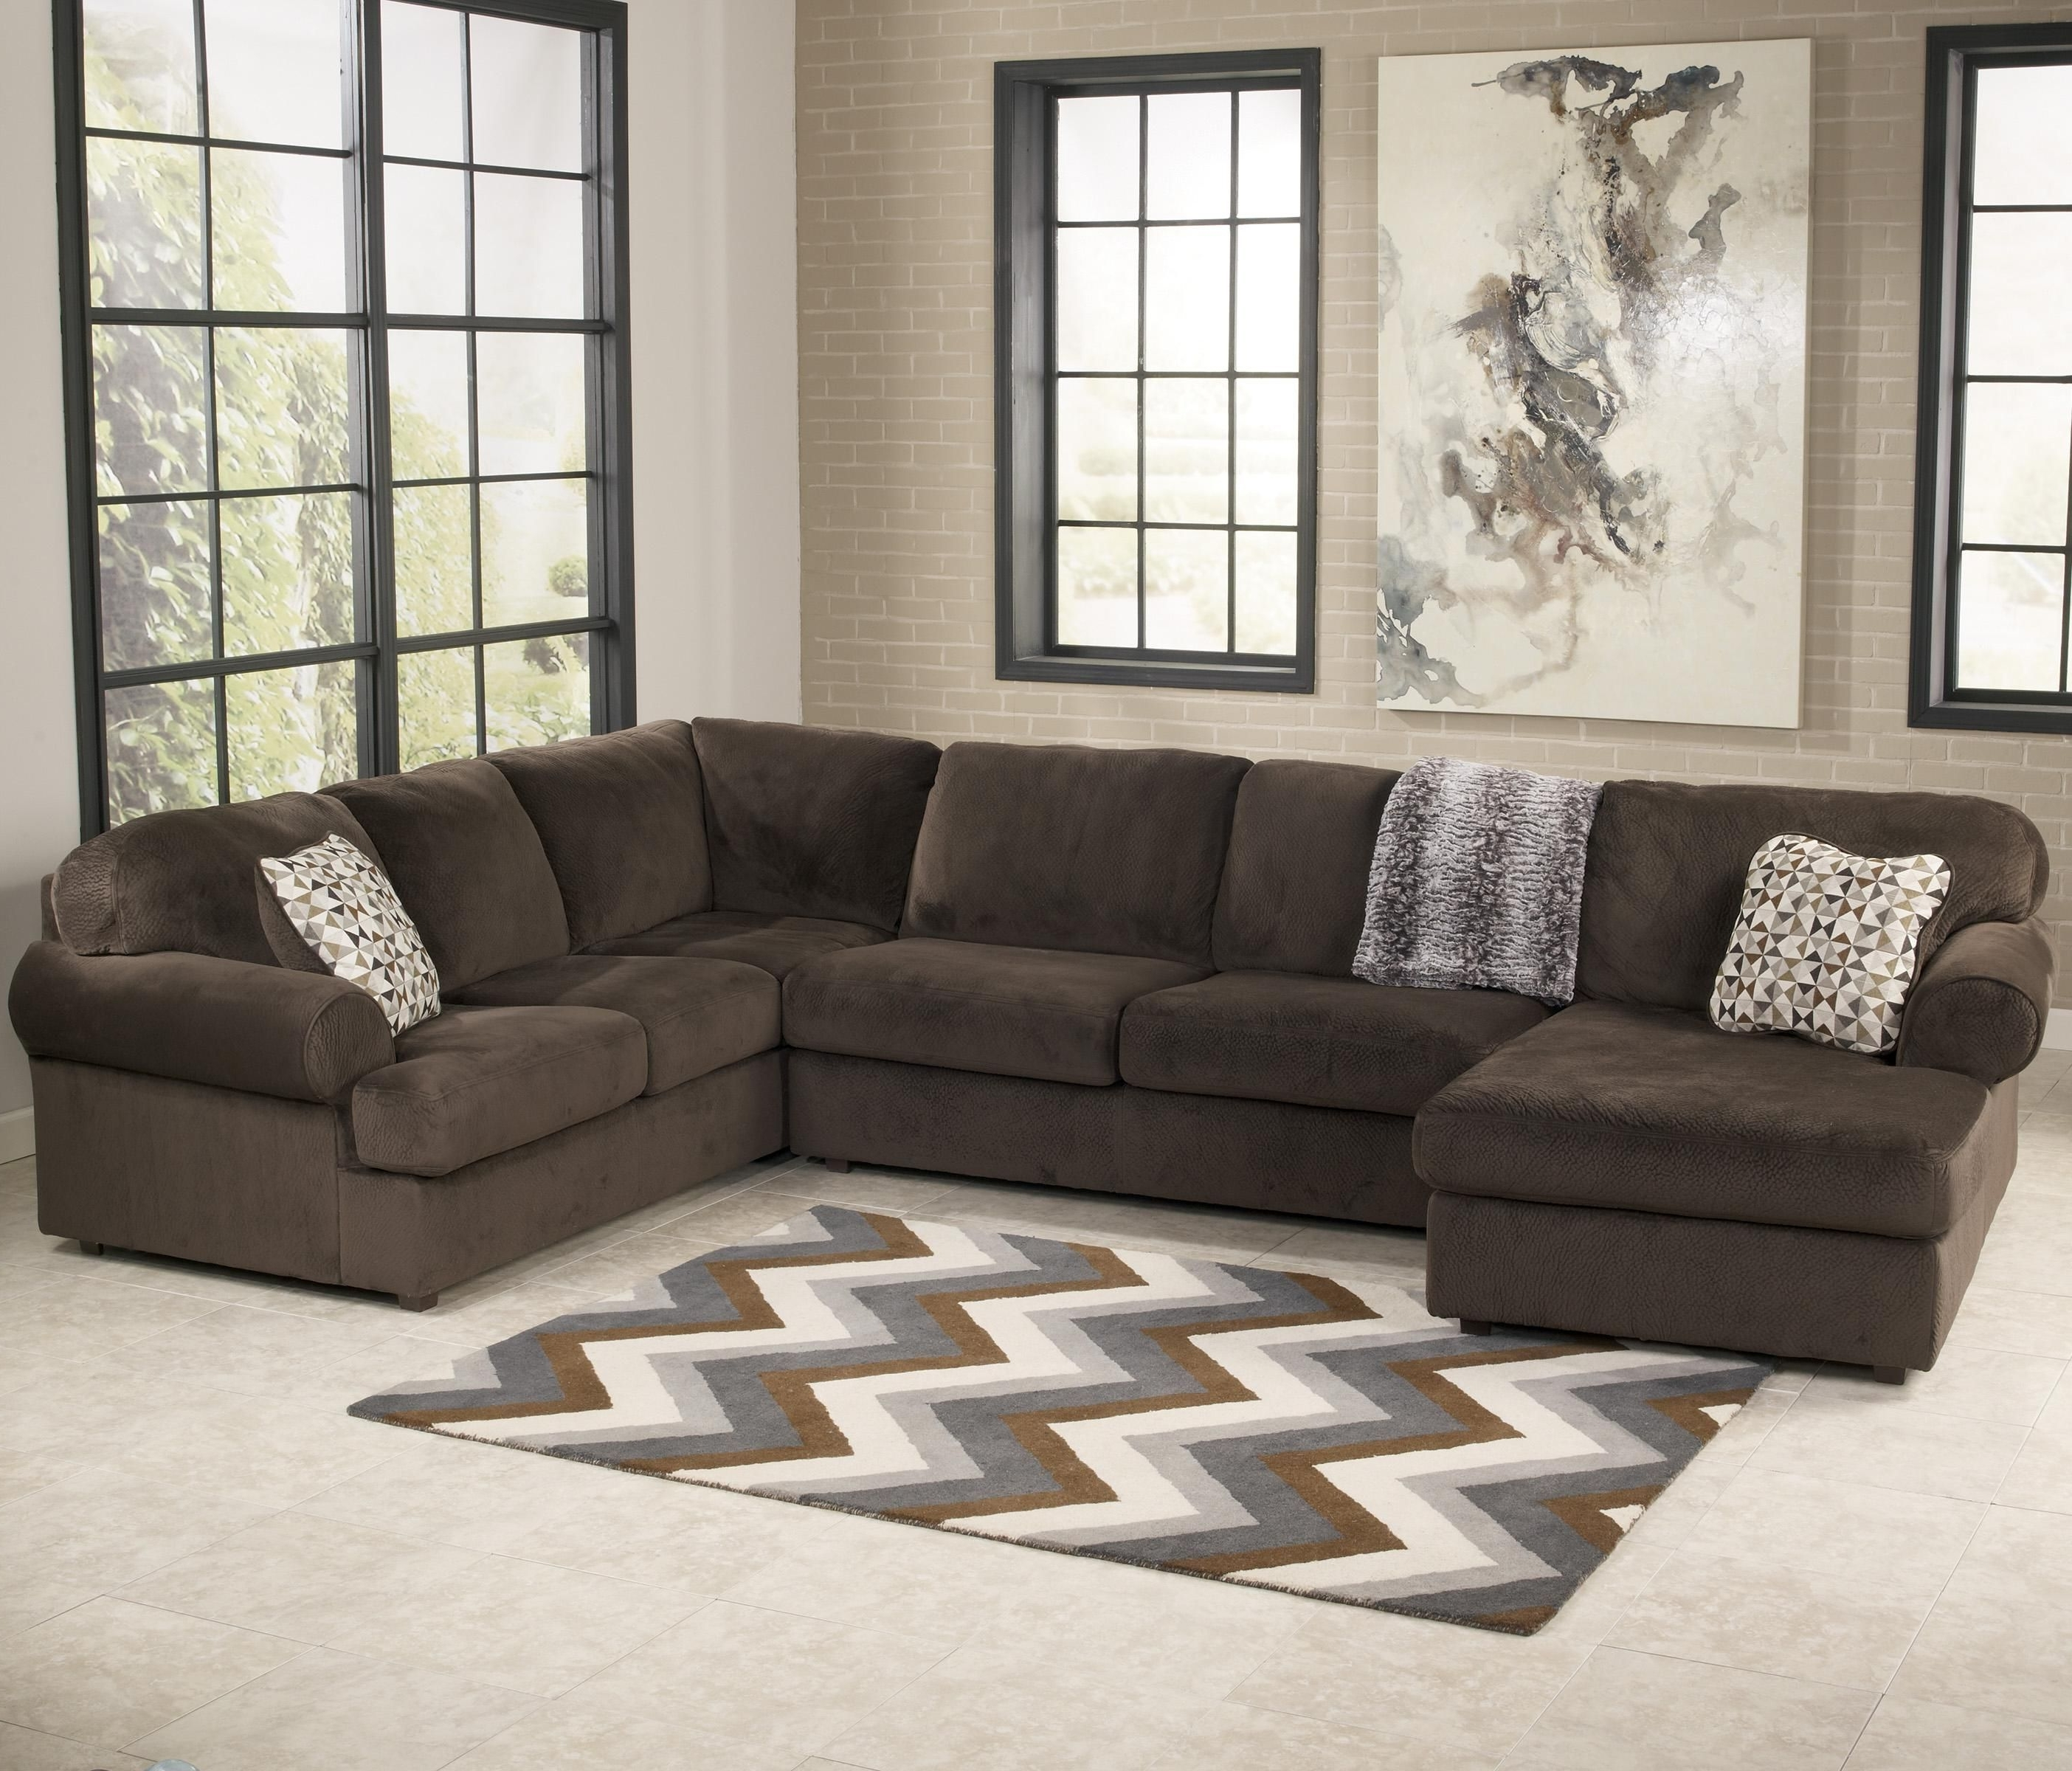 Jessa Place – Chocolate Casual Sectional Sofa With Left Chaise In Most Recently Released Jackson Ms Sectional Sofas (View 10 of 20)